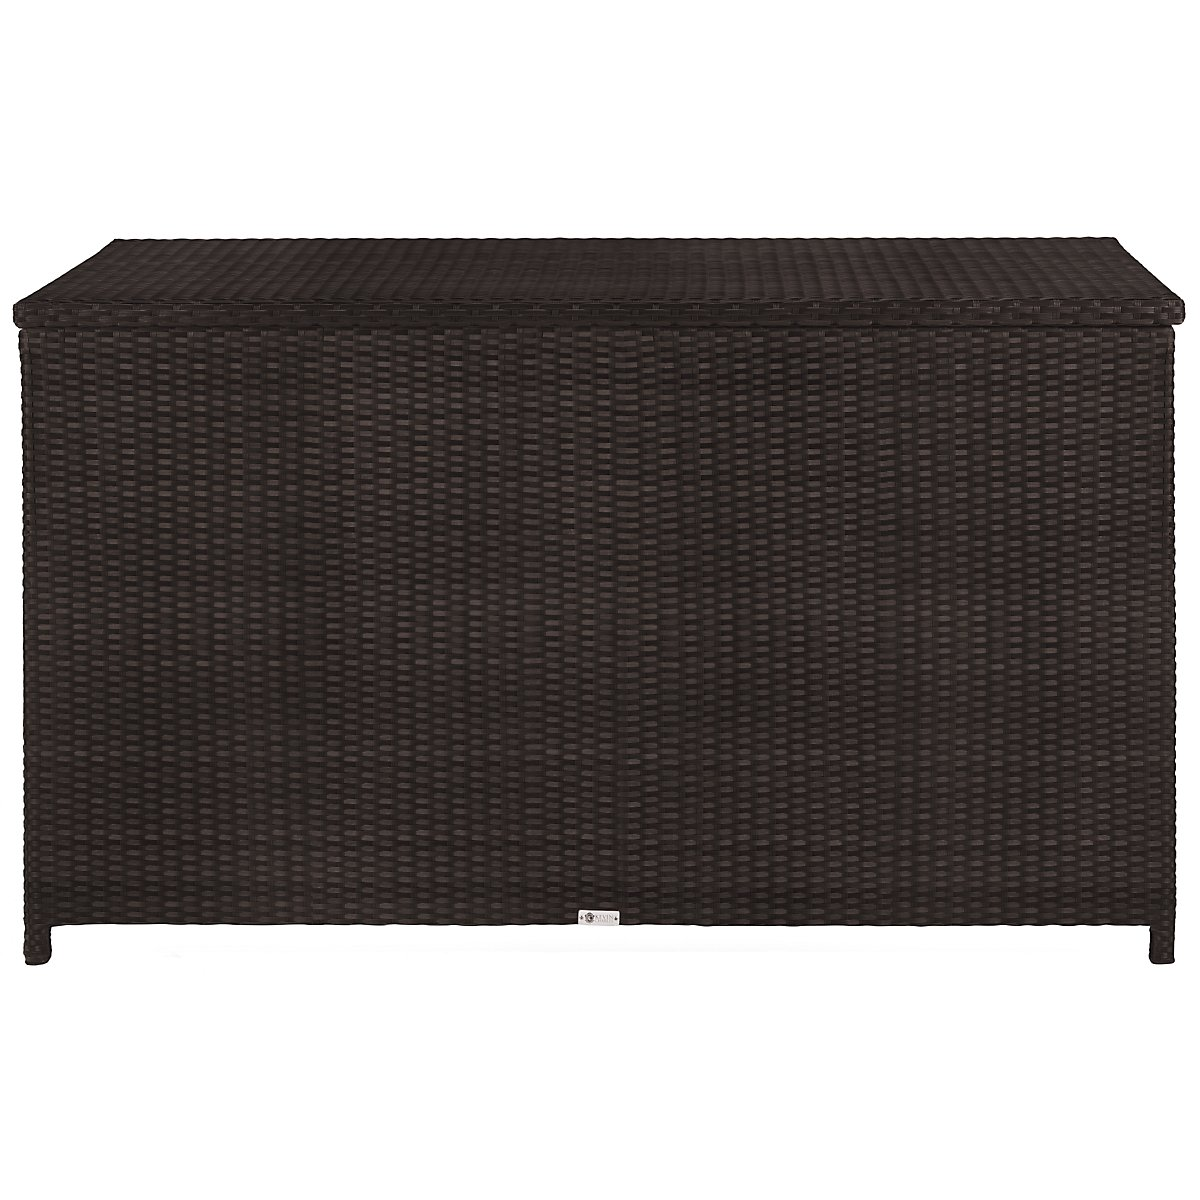 Zen2 Dark Tone Storage Chest